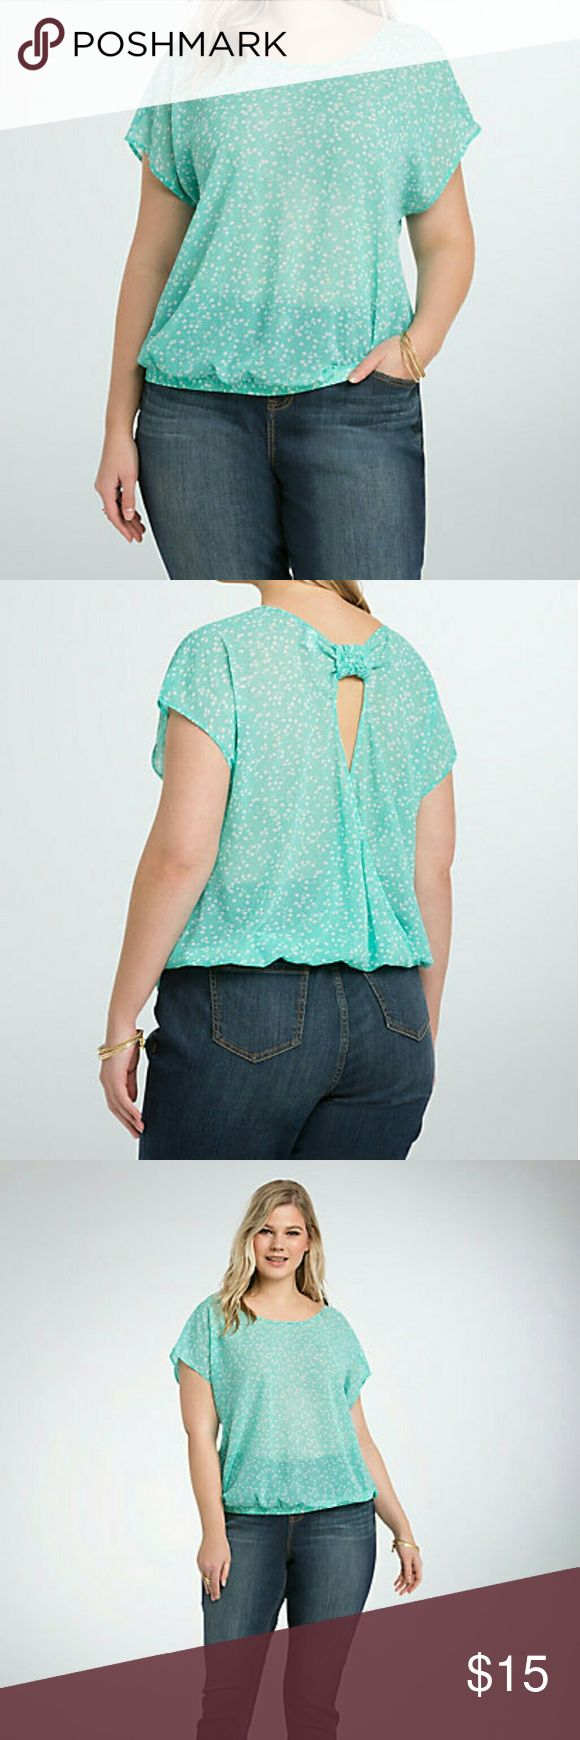 """Floral Chiffon Bow Back Top Want to improve your #currentmood? Sport this sheer mint green chiffon top; it's paired with a playful floral print. The open back is held in place by an adorable bow, the cutout revealing a sliver of skin. A banded bottom lends dramatic definition.     Model is 5'9, size 1      Size 1 measures 28 1/4"""" from shoulder     Polyester     Wash cold, dry low     Imported plus size top torrid Tops"""